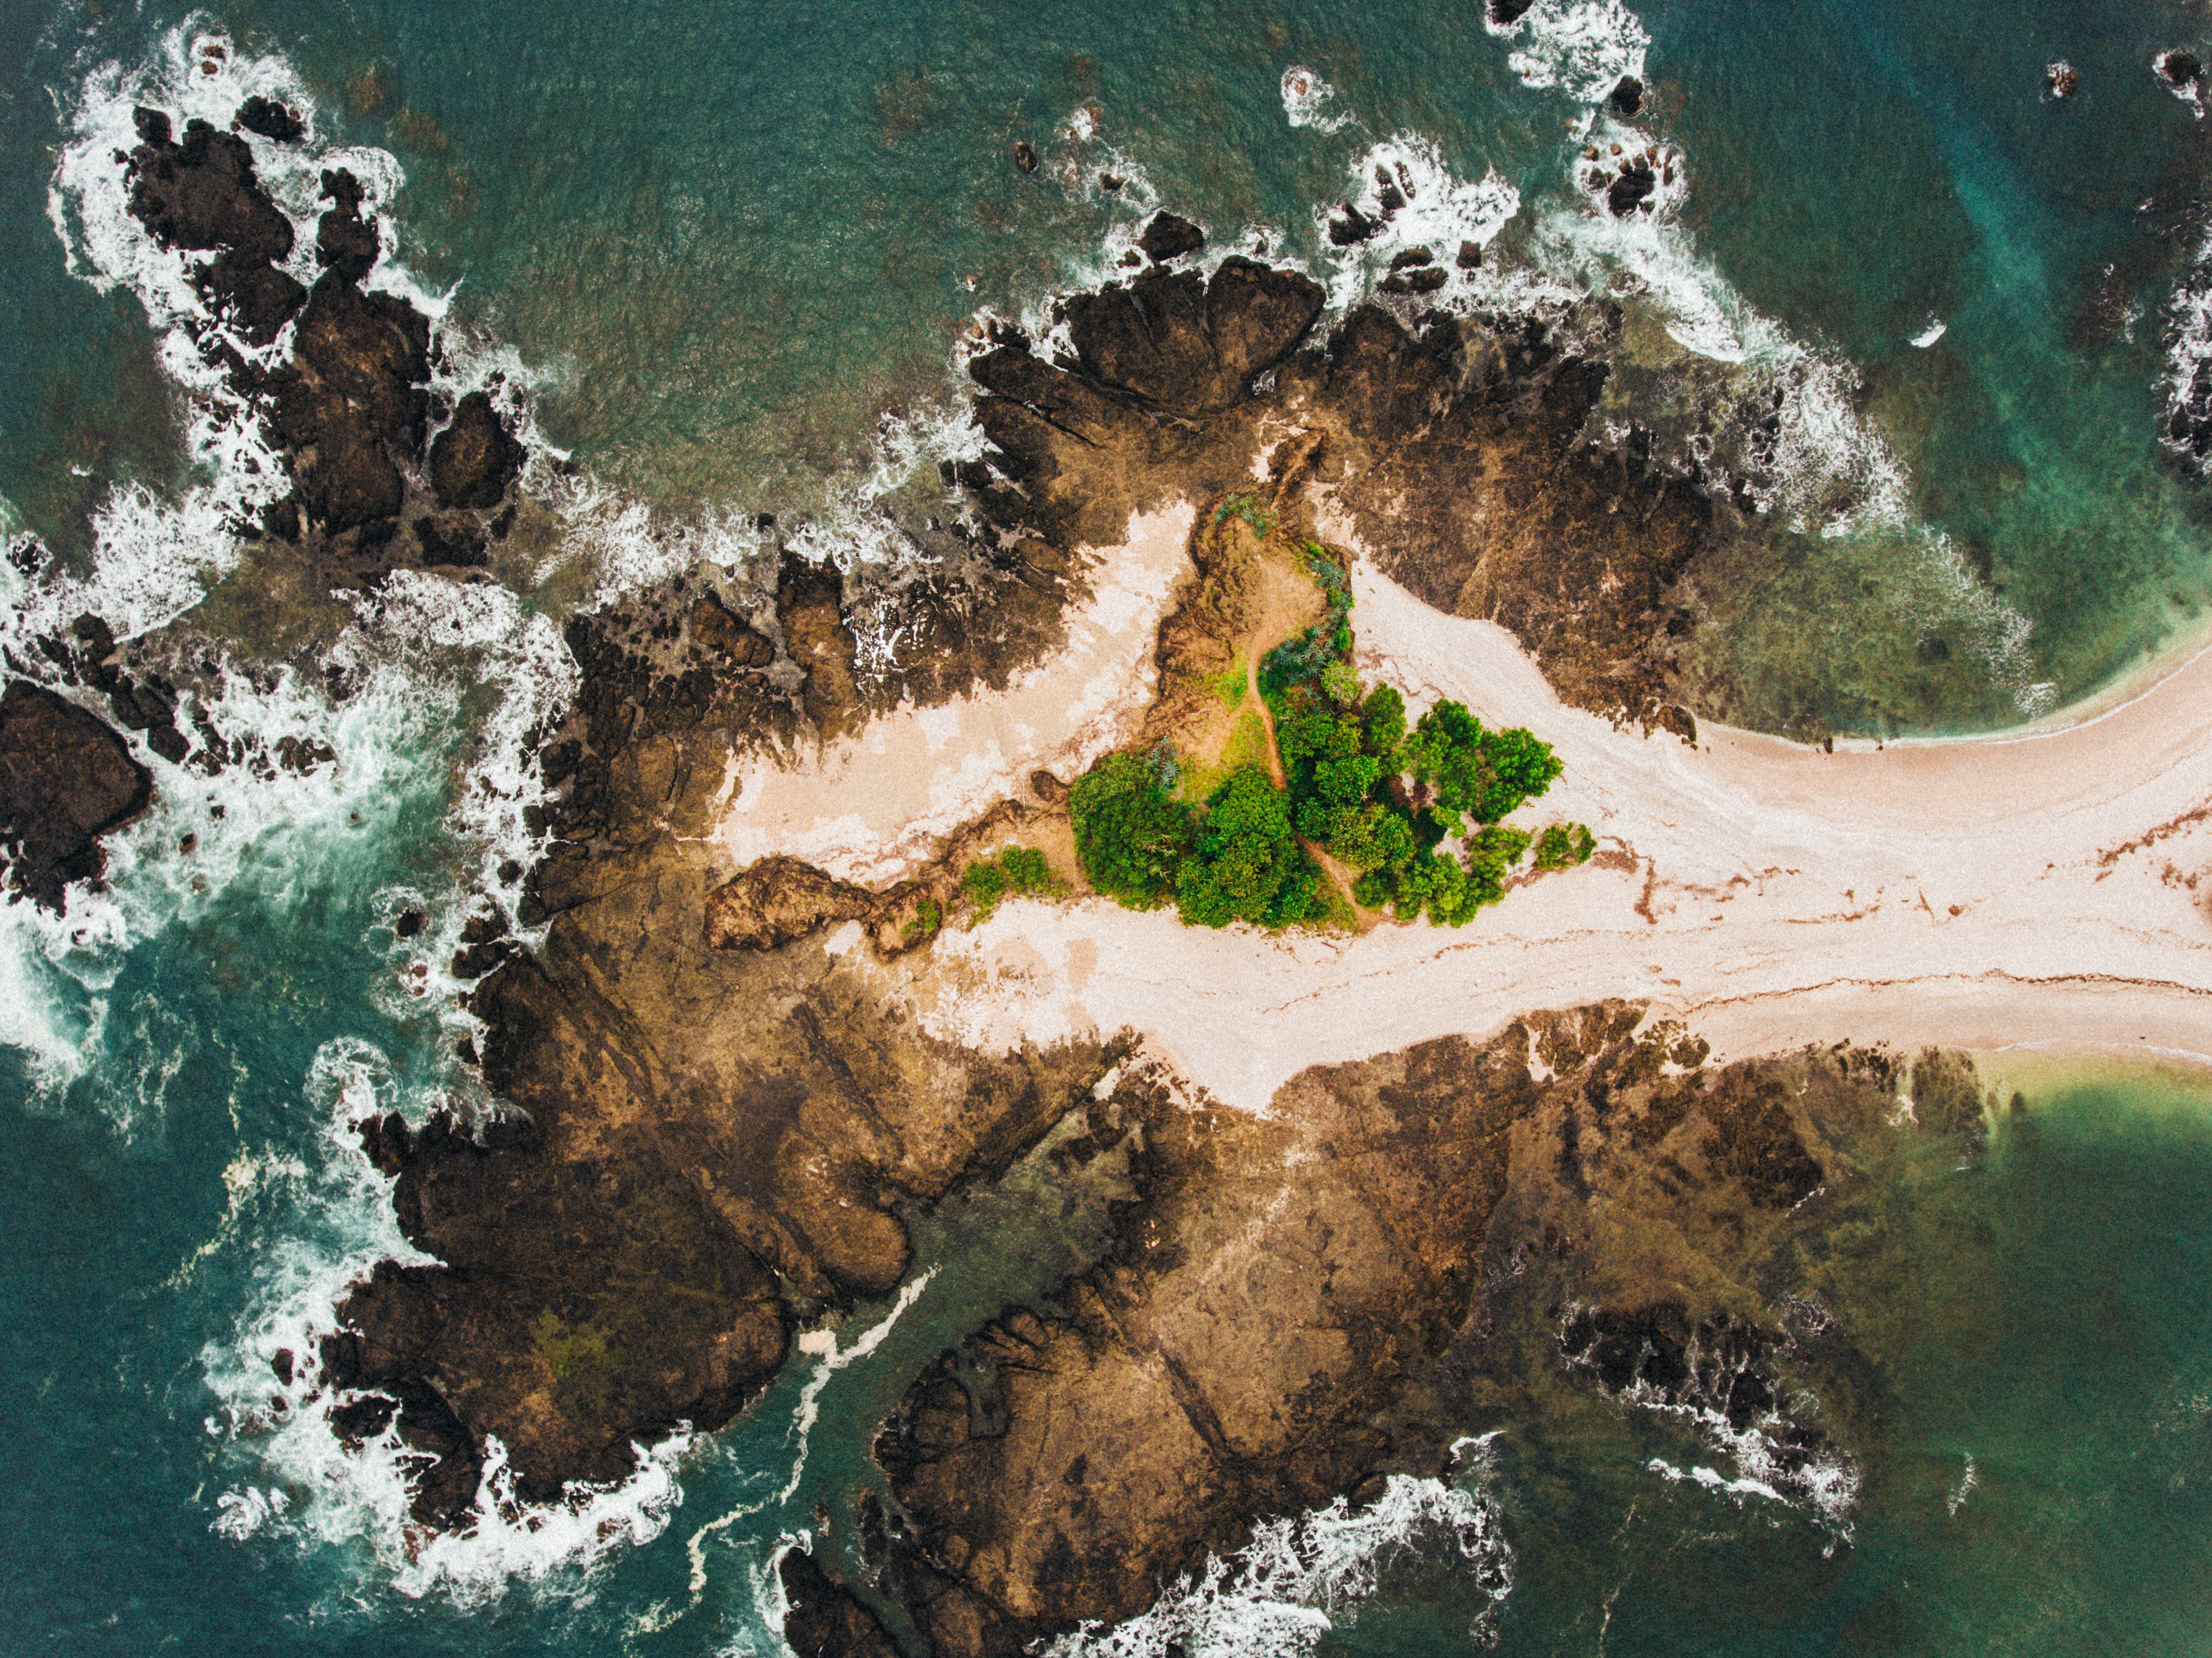 island surrounded by ocean water